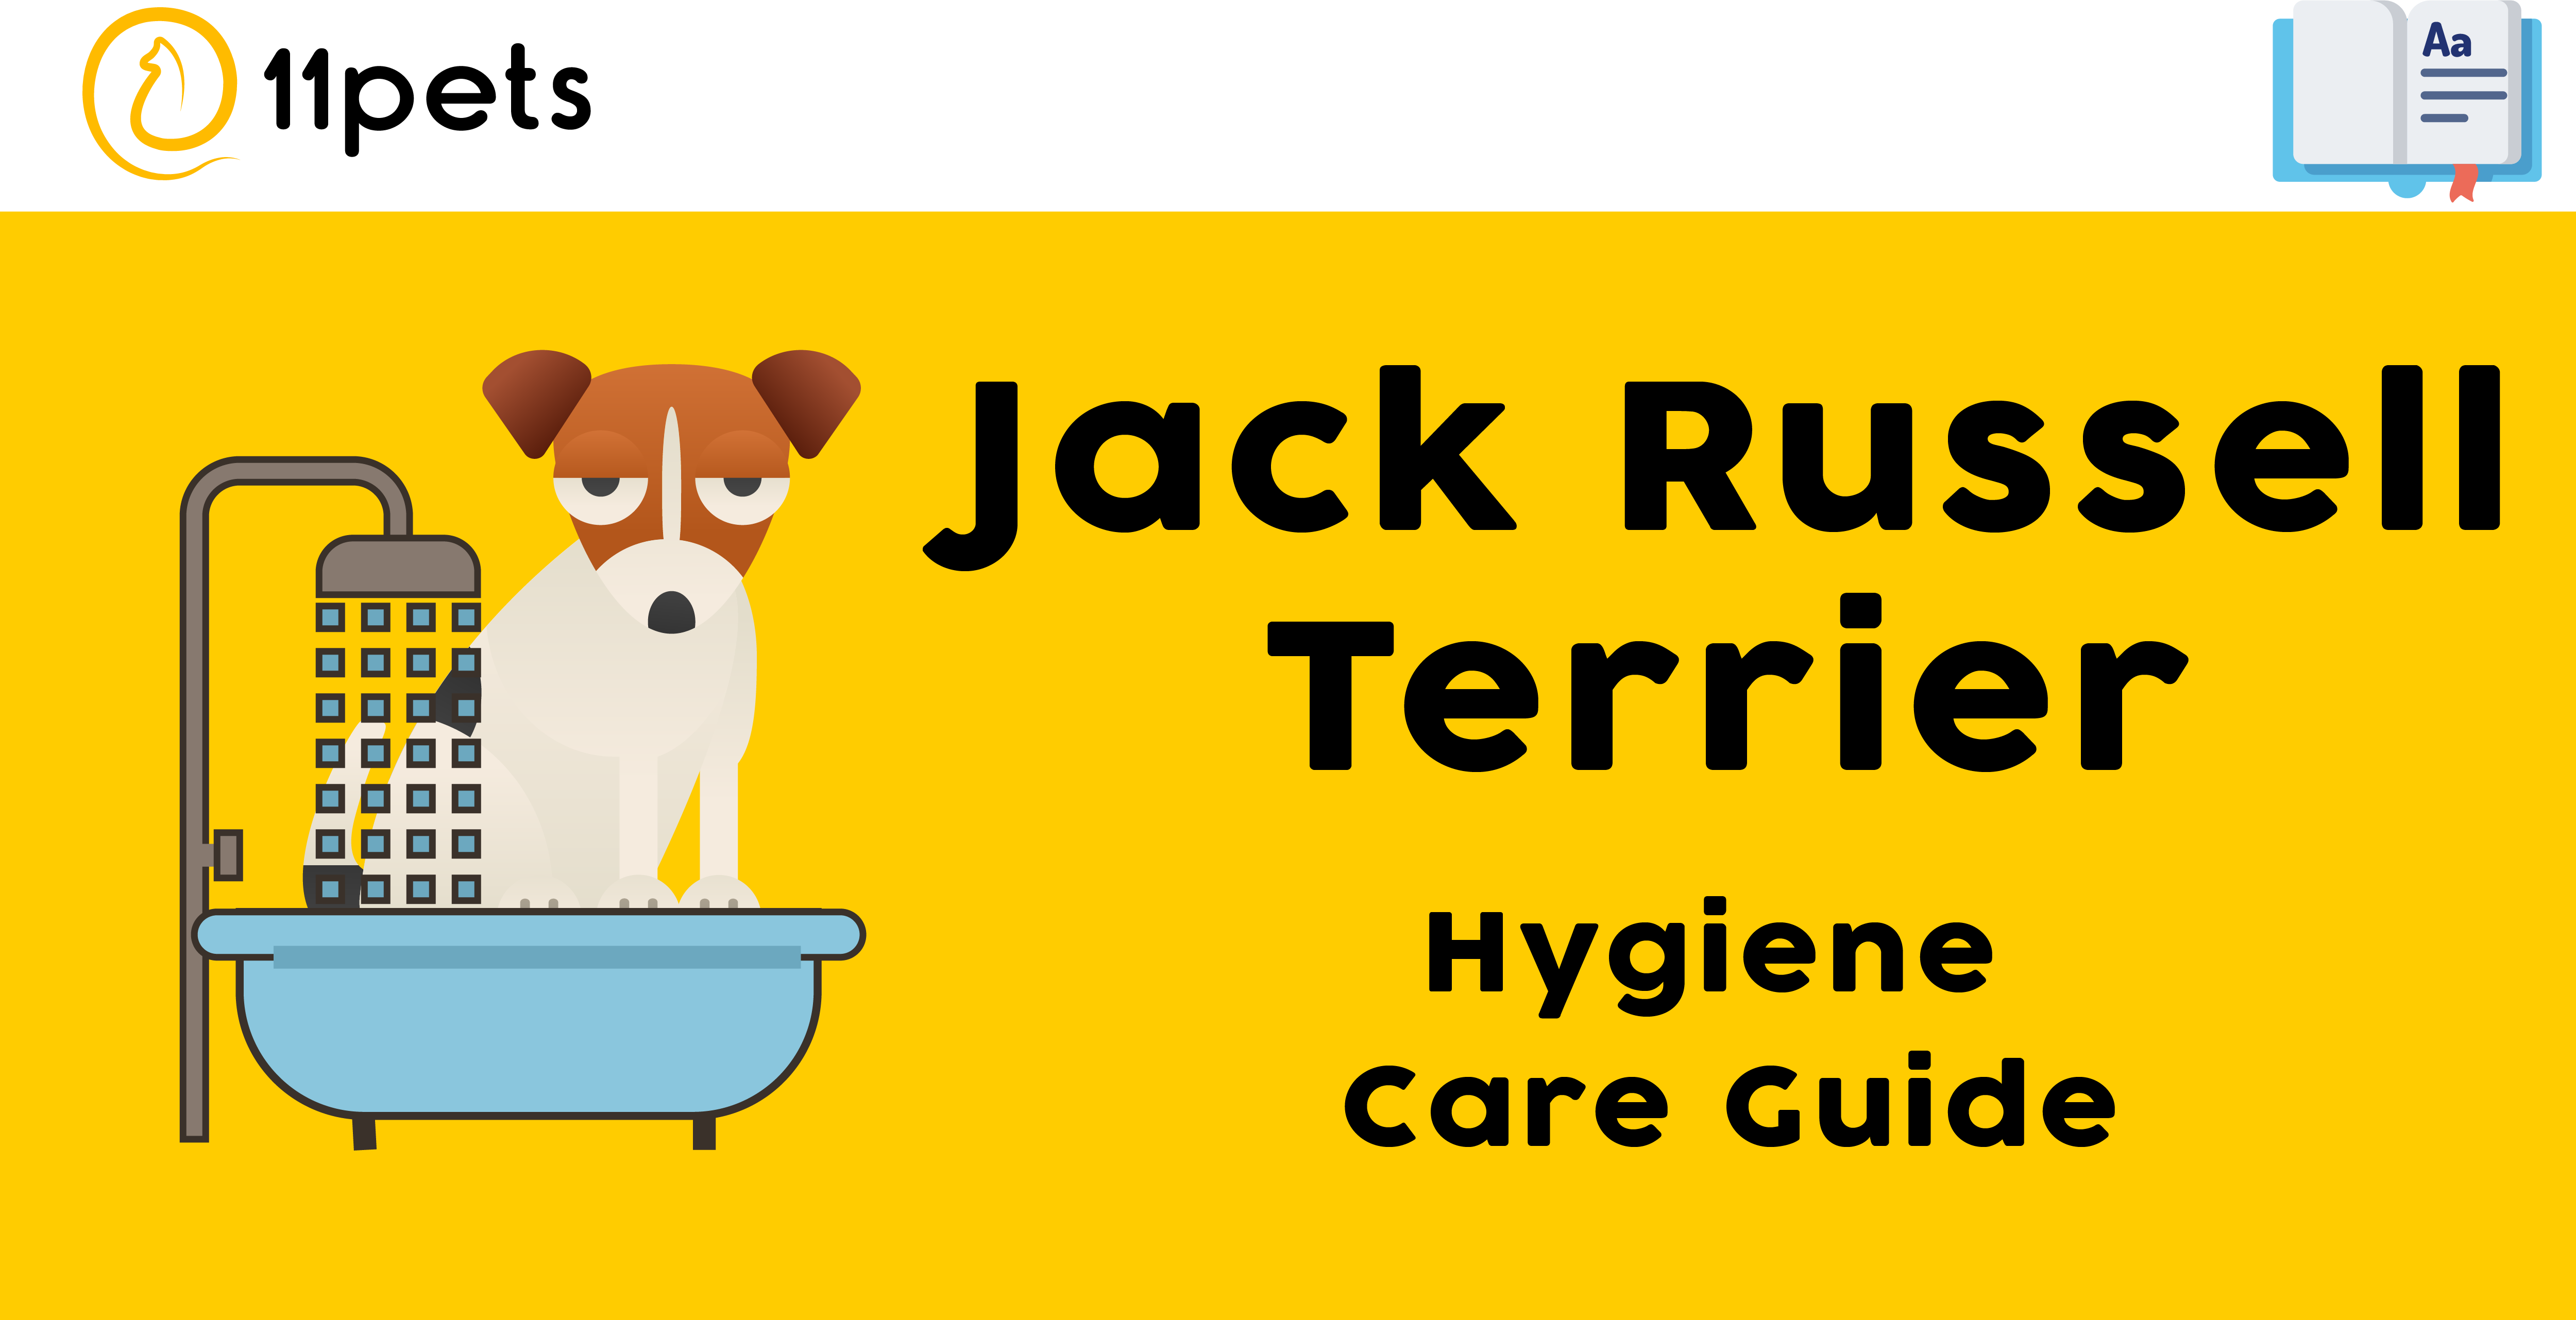 Hygiene Care Guide for Jack Russell Terrier